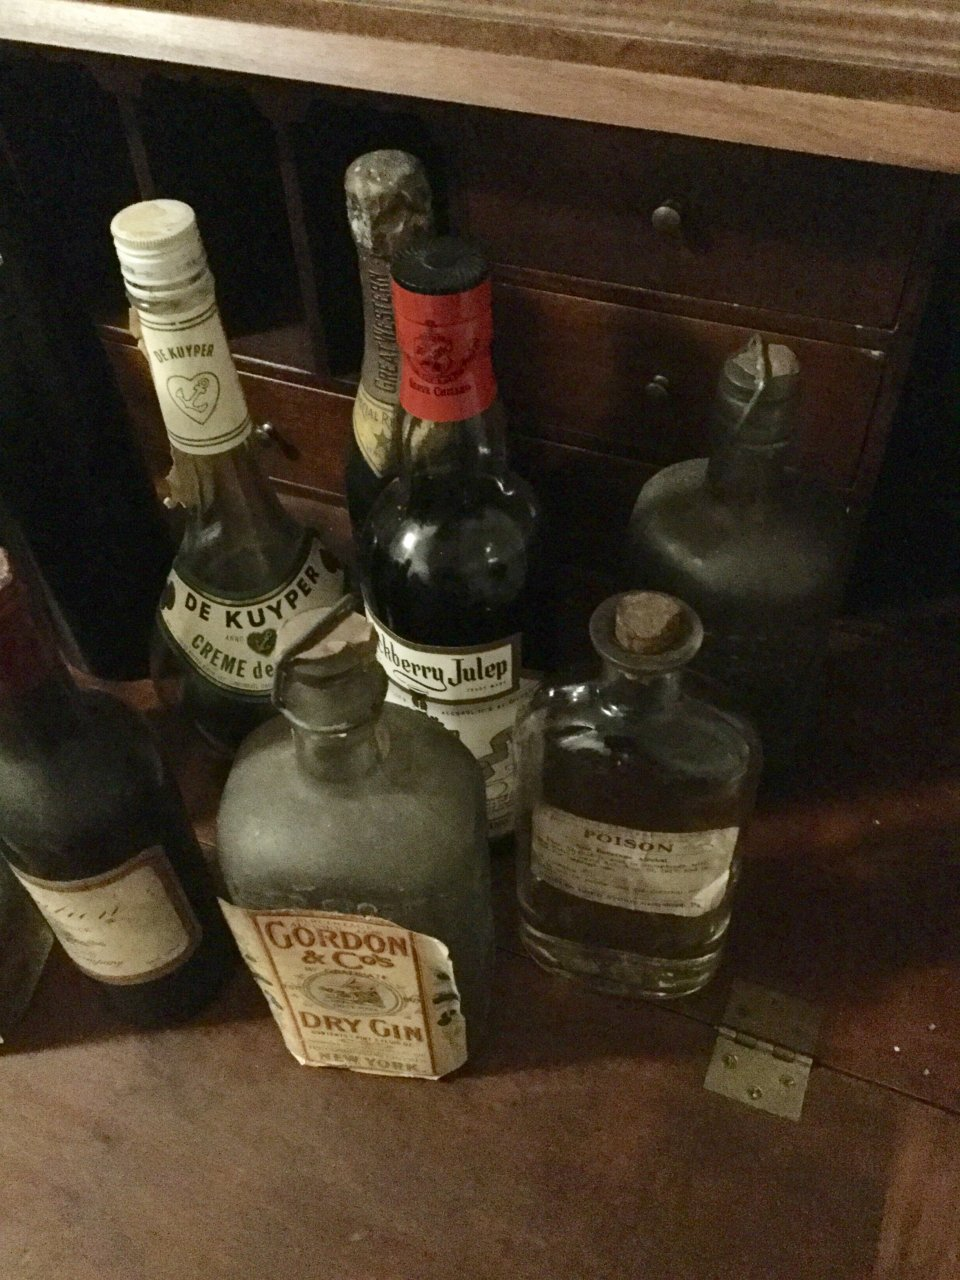 I Recently Inherited Some Vintage Alcohol From My Father ...